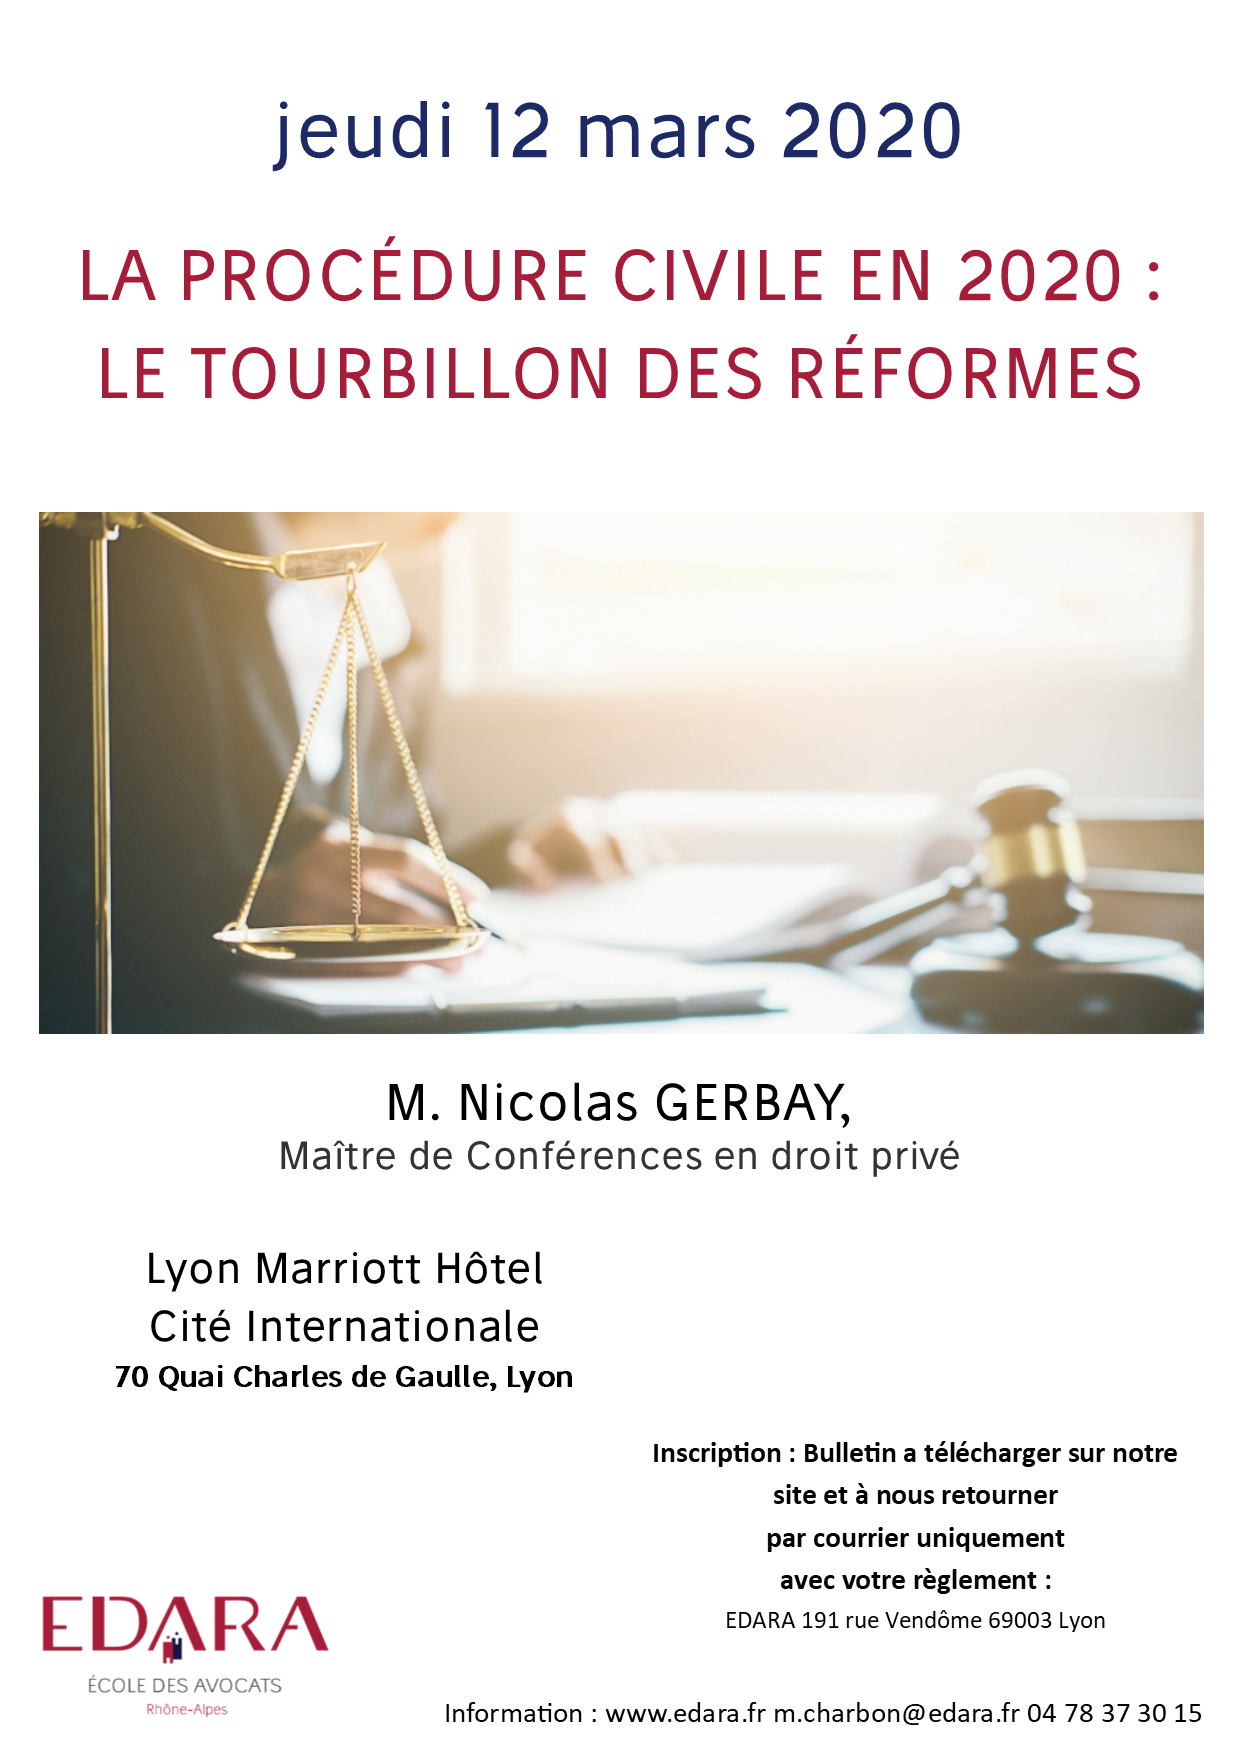 UNE FLYER A4 2 MARRIOTT 110220